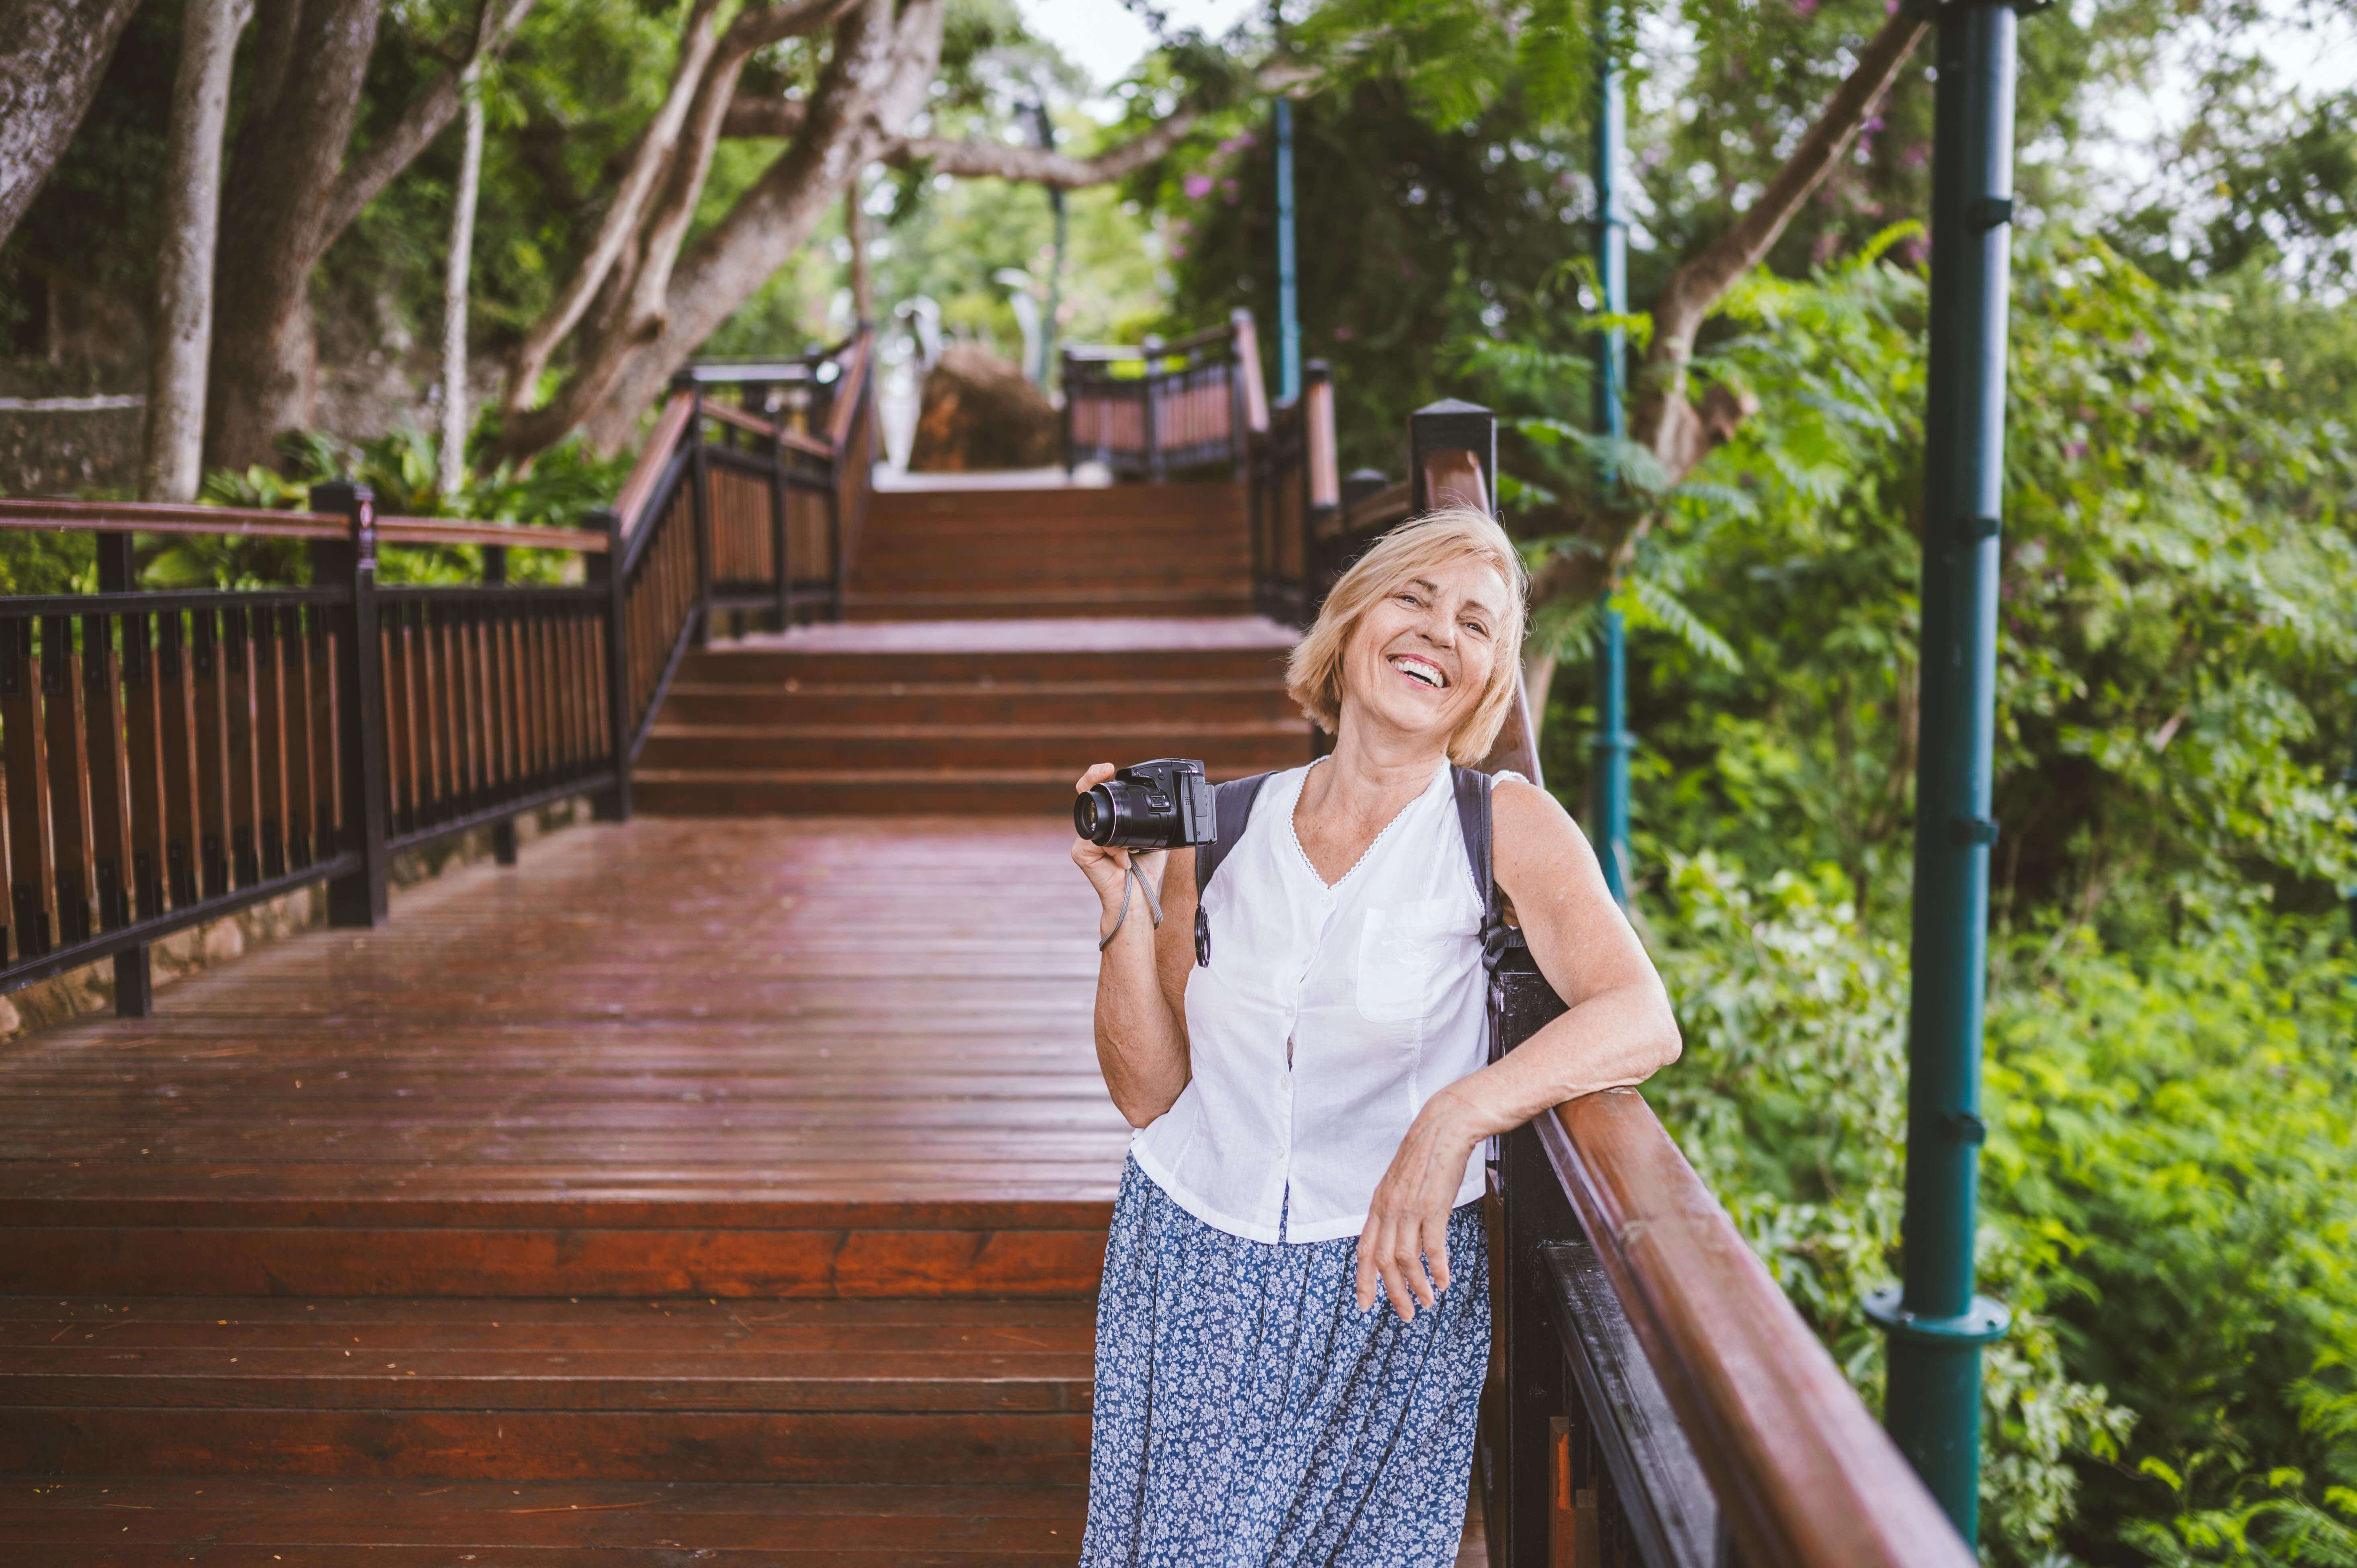 Where will you explore as a solo female traveller?